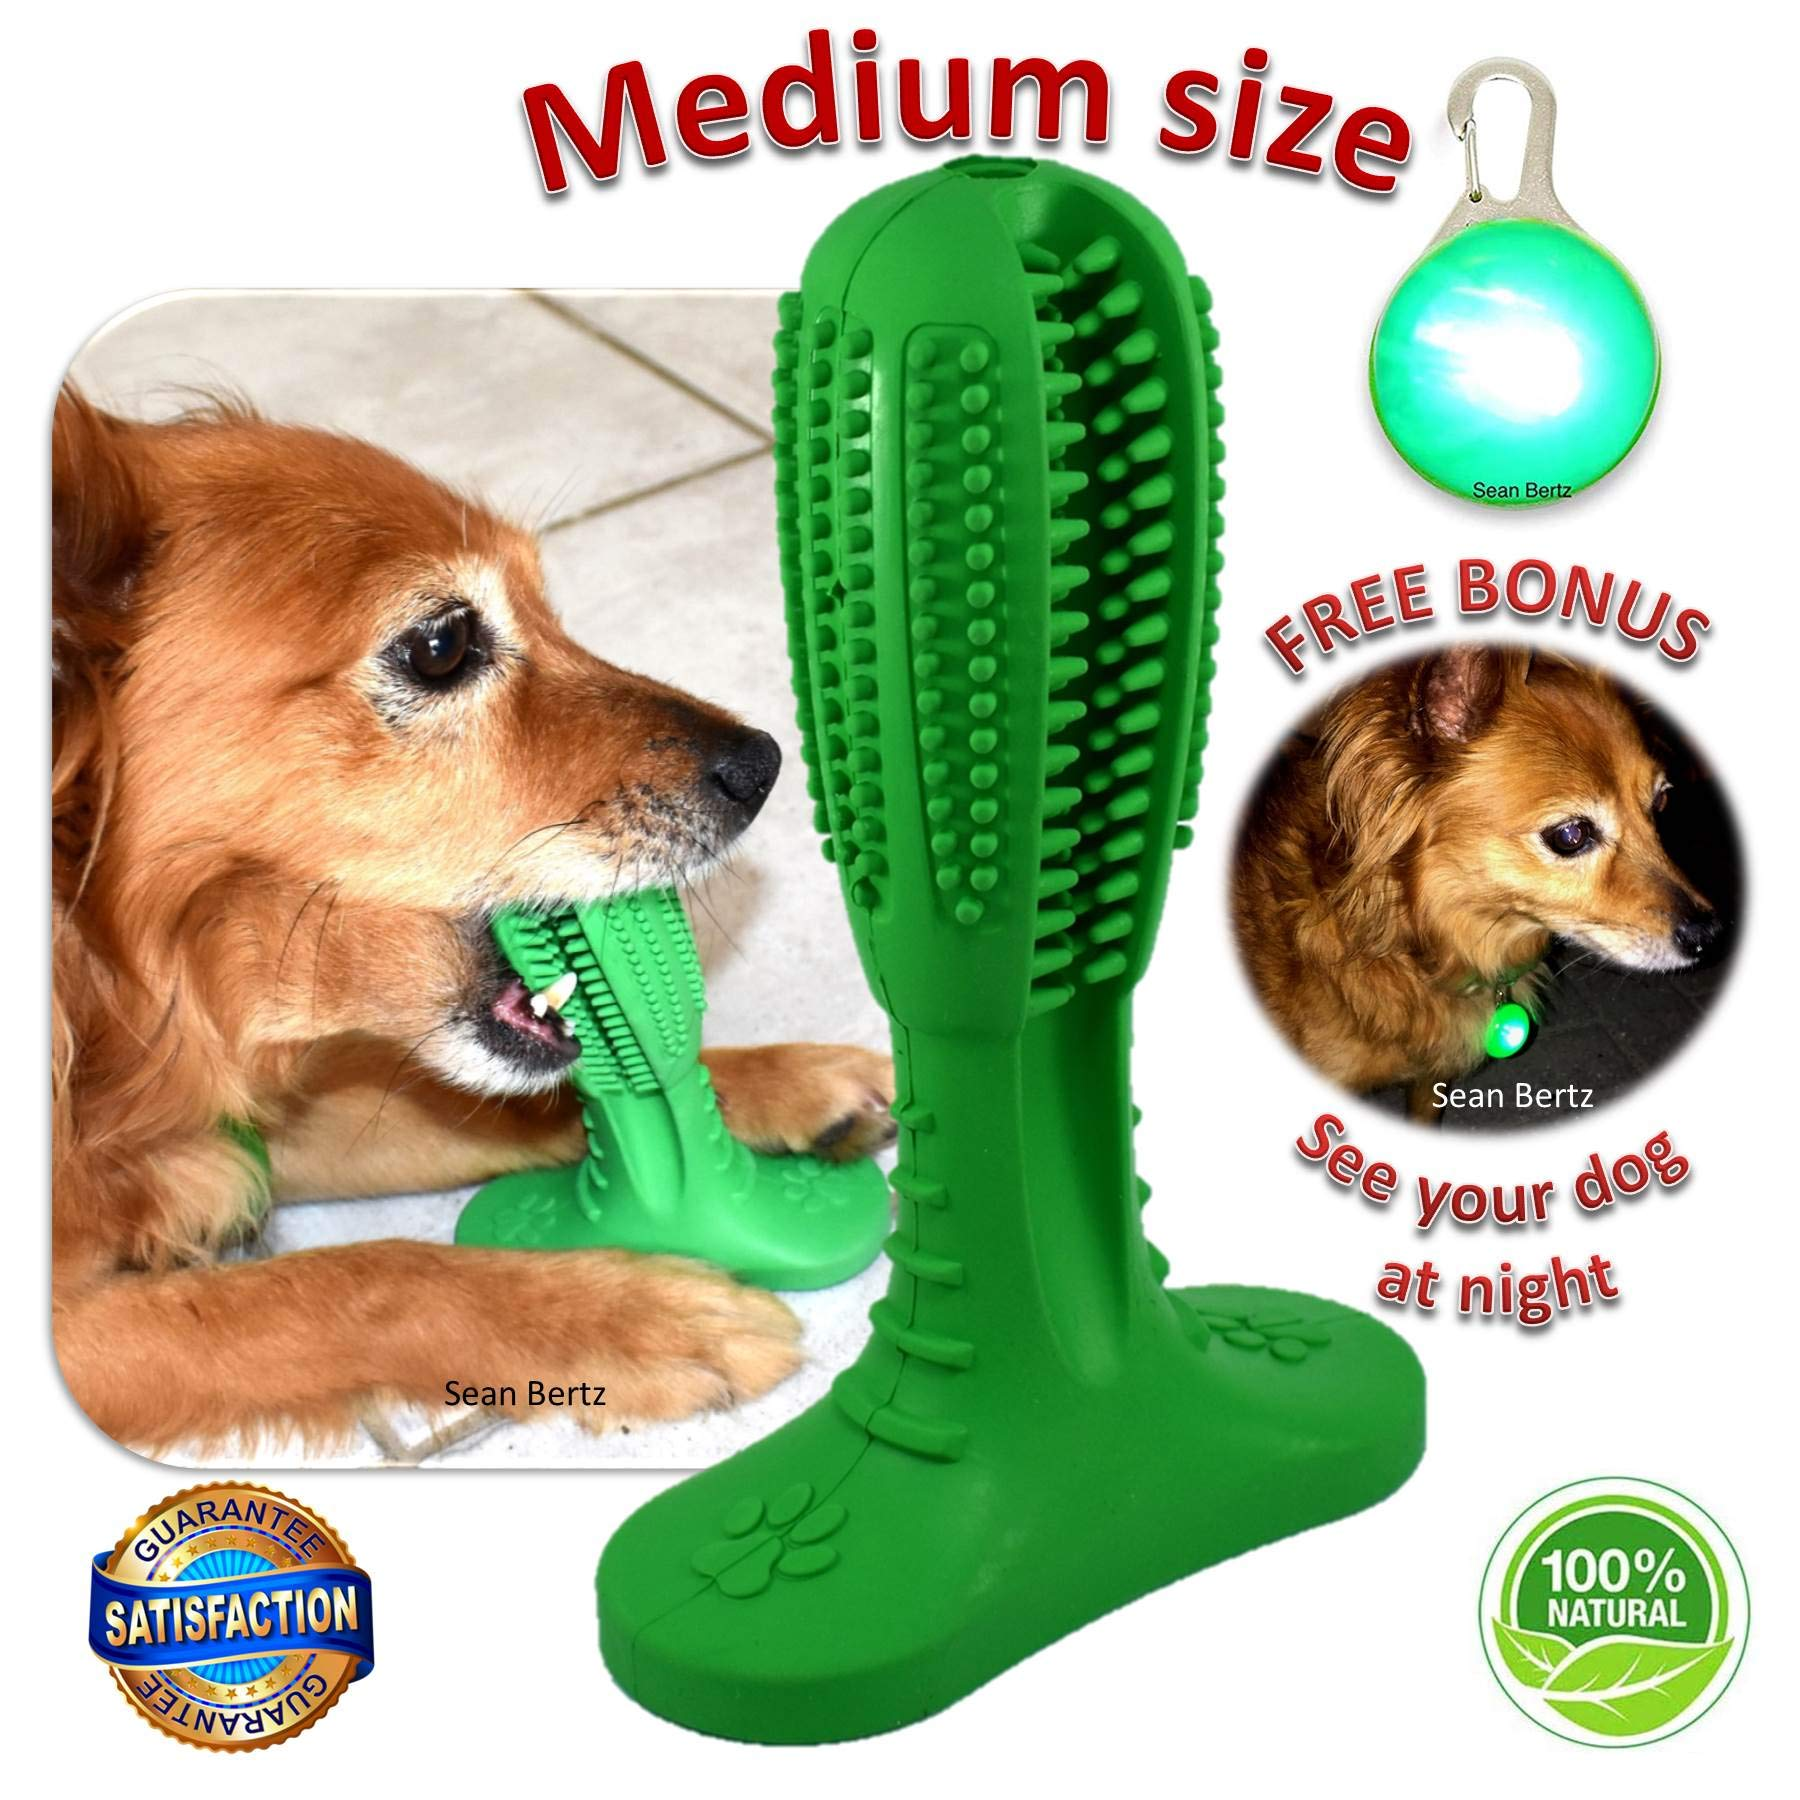 Dog Toothbrush Stick Small Dogs Teeth Cleaning Chew Toys Puppies Dental Care Brushing Stick Puppy Tooth Brush Effective Doggy Tooth Cleaner Bite Resistance Chewing Toy for Pets all Breeds Medium Breed by Sean Bertz